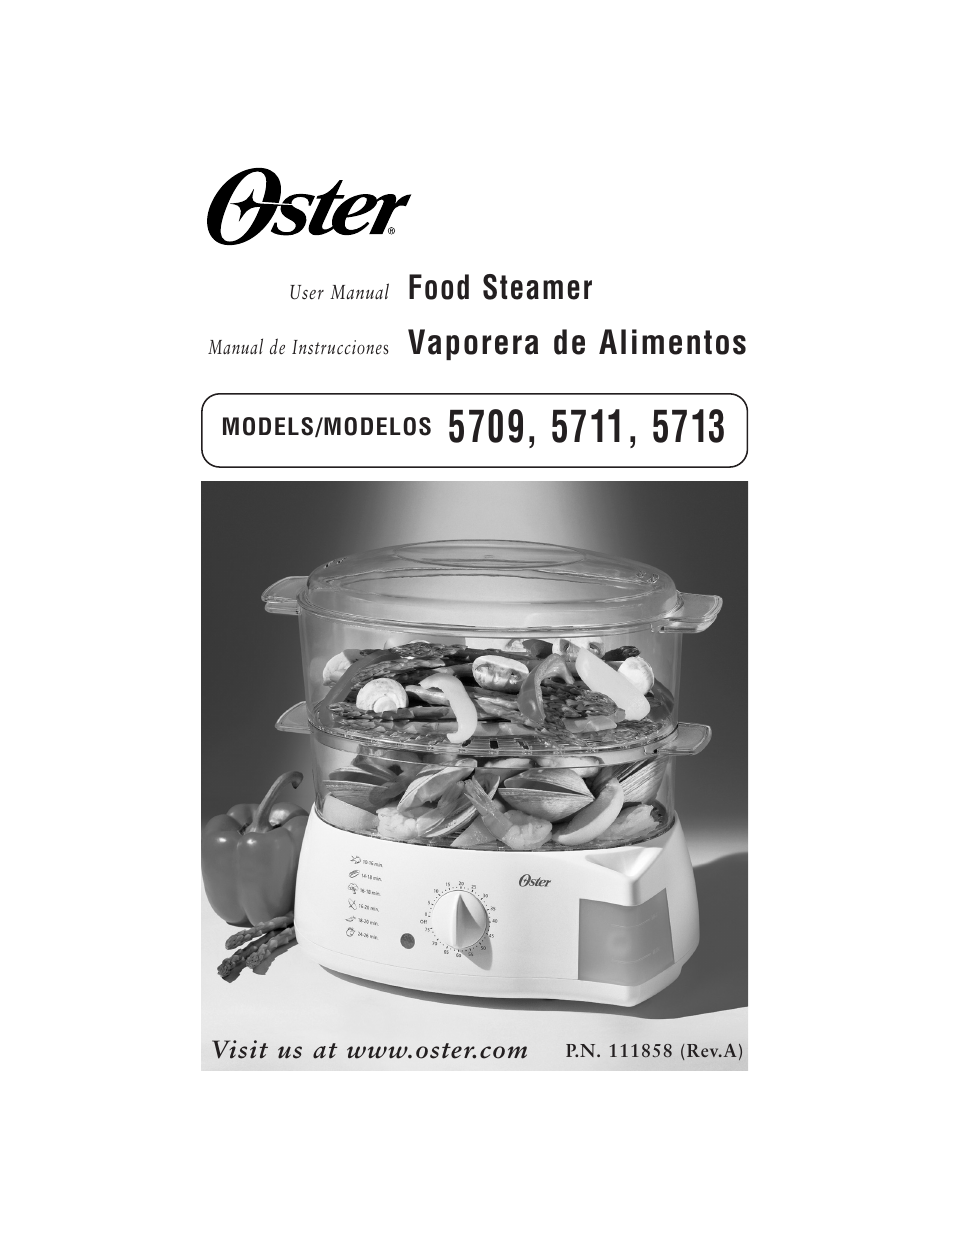 oster 5711 user manual 23 pages also for 5709 5713 rh manualsdir com oster 5711 steamer instruction manual oster 5711 steamer instruction manual